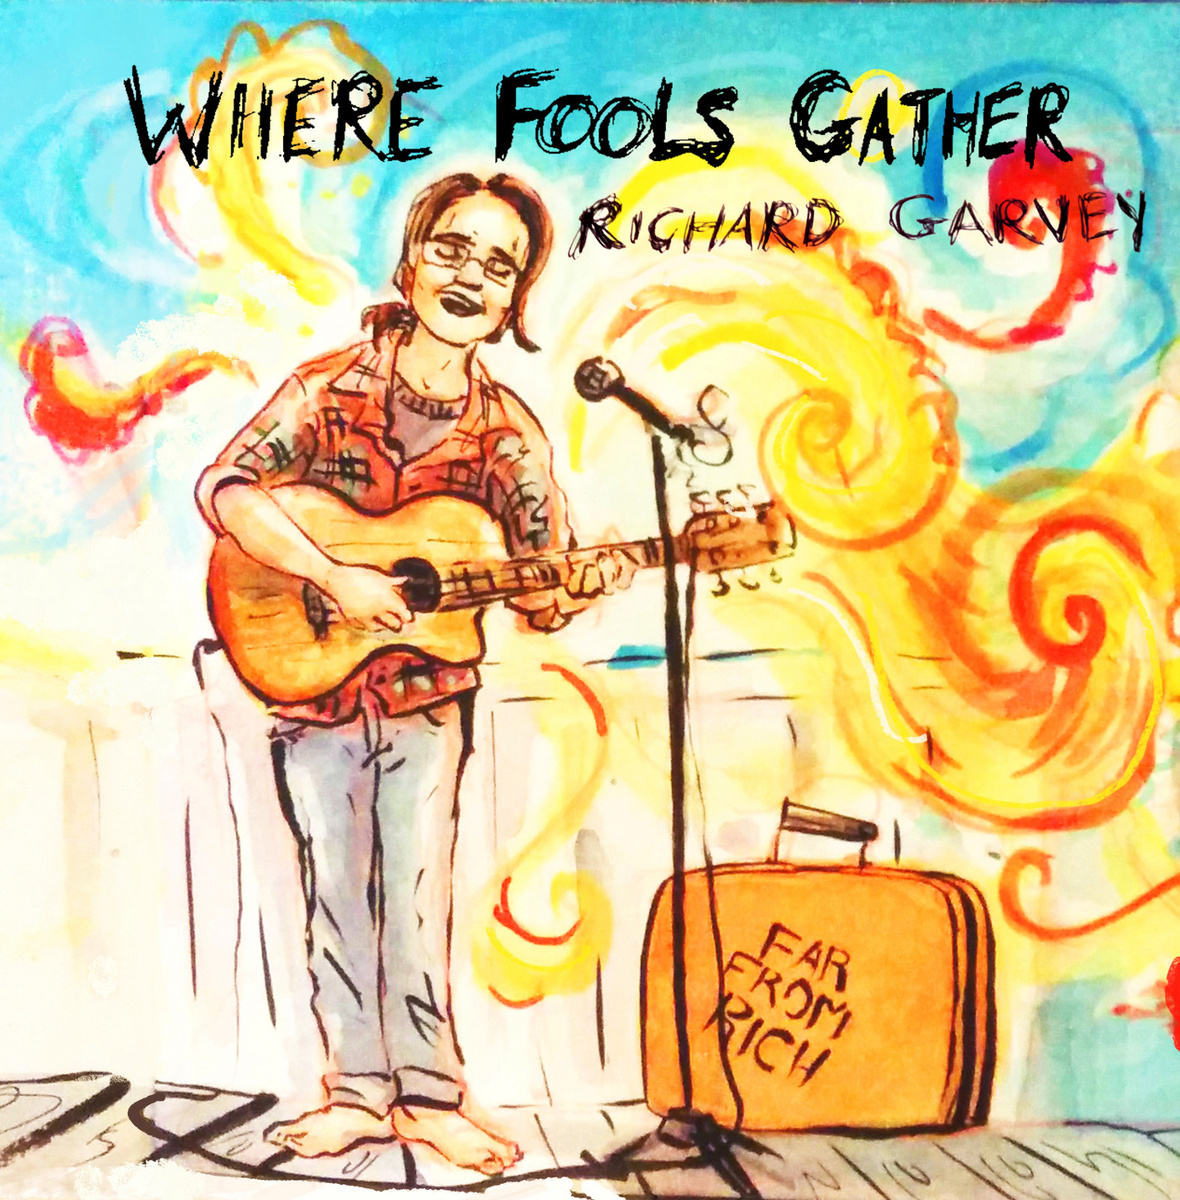 Richard Garvey 'Where Fools Gather' Review